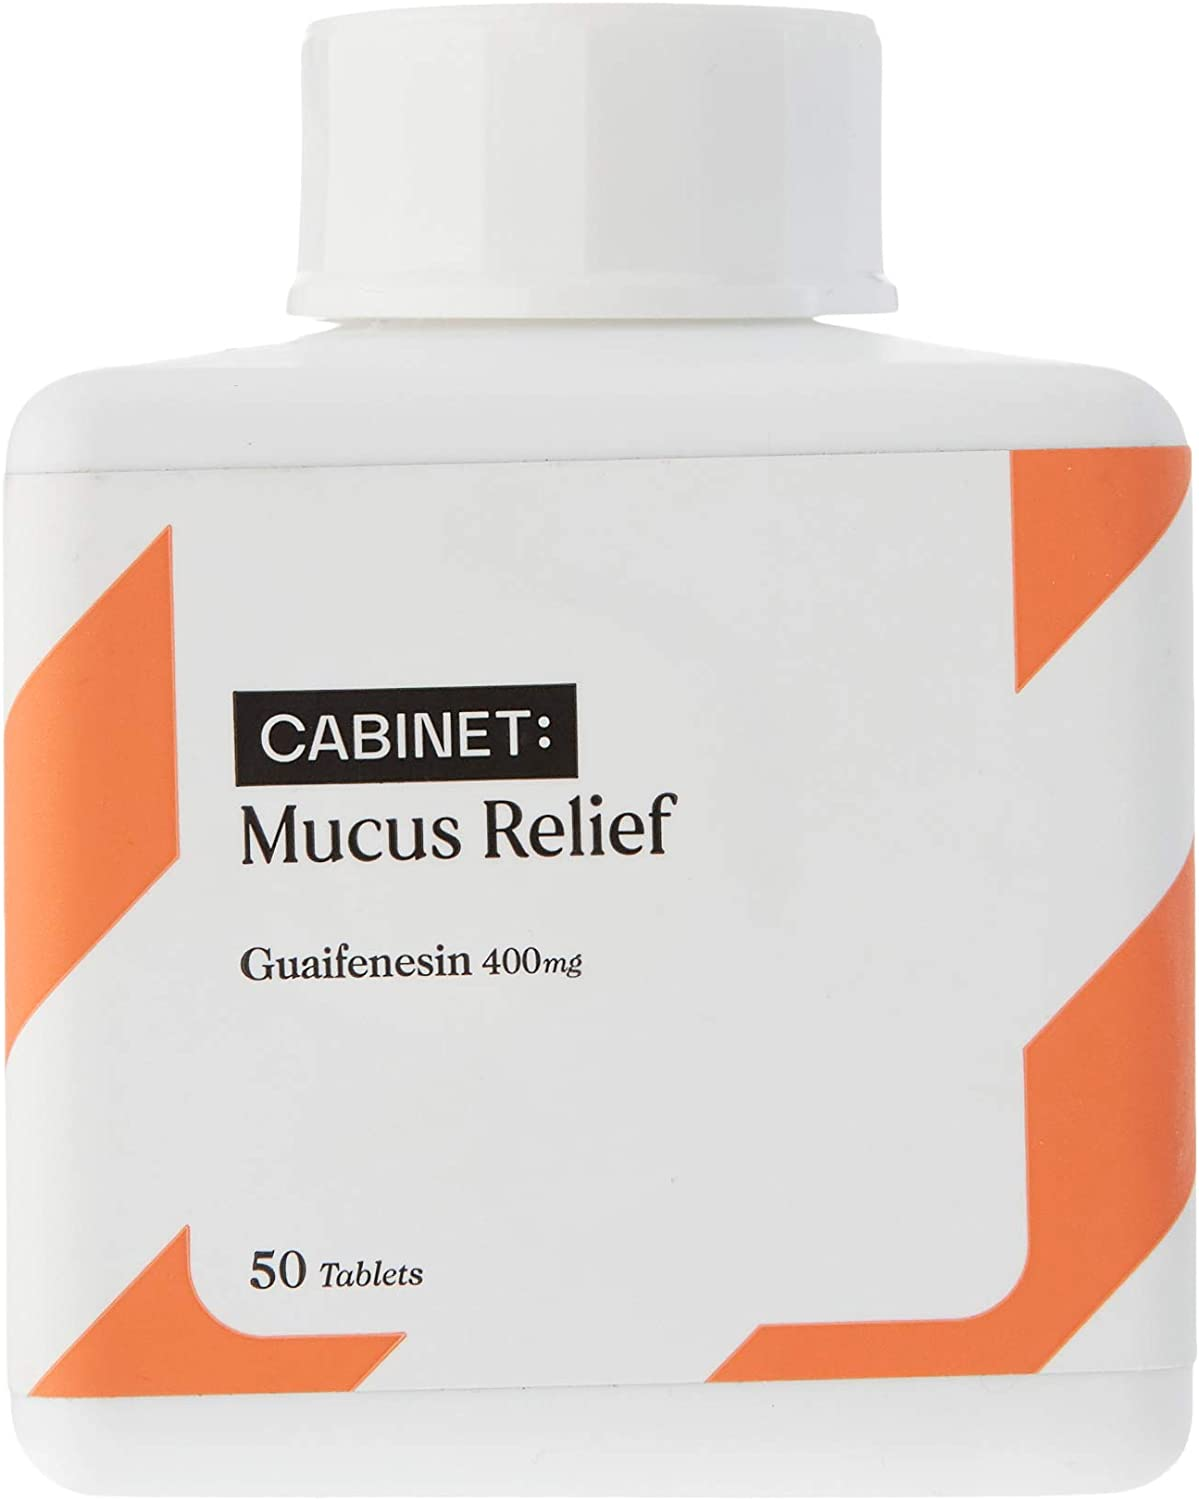 Cabinet Mucus Relief Caplets (Active Ingredients Guaifenesin 400mg) | Chest Congestion and Decongestant | Thins and Loosens Buildup | Fast Acting: Health & Personal Care